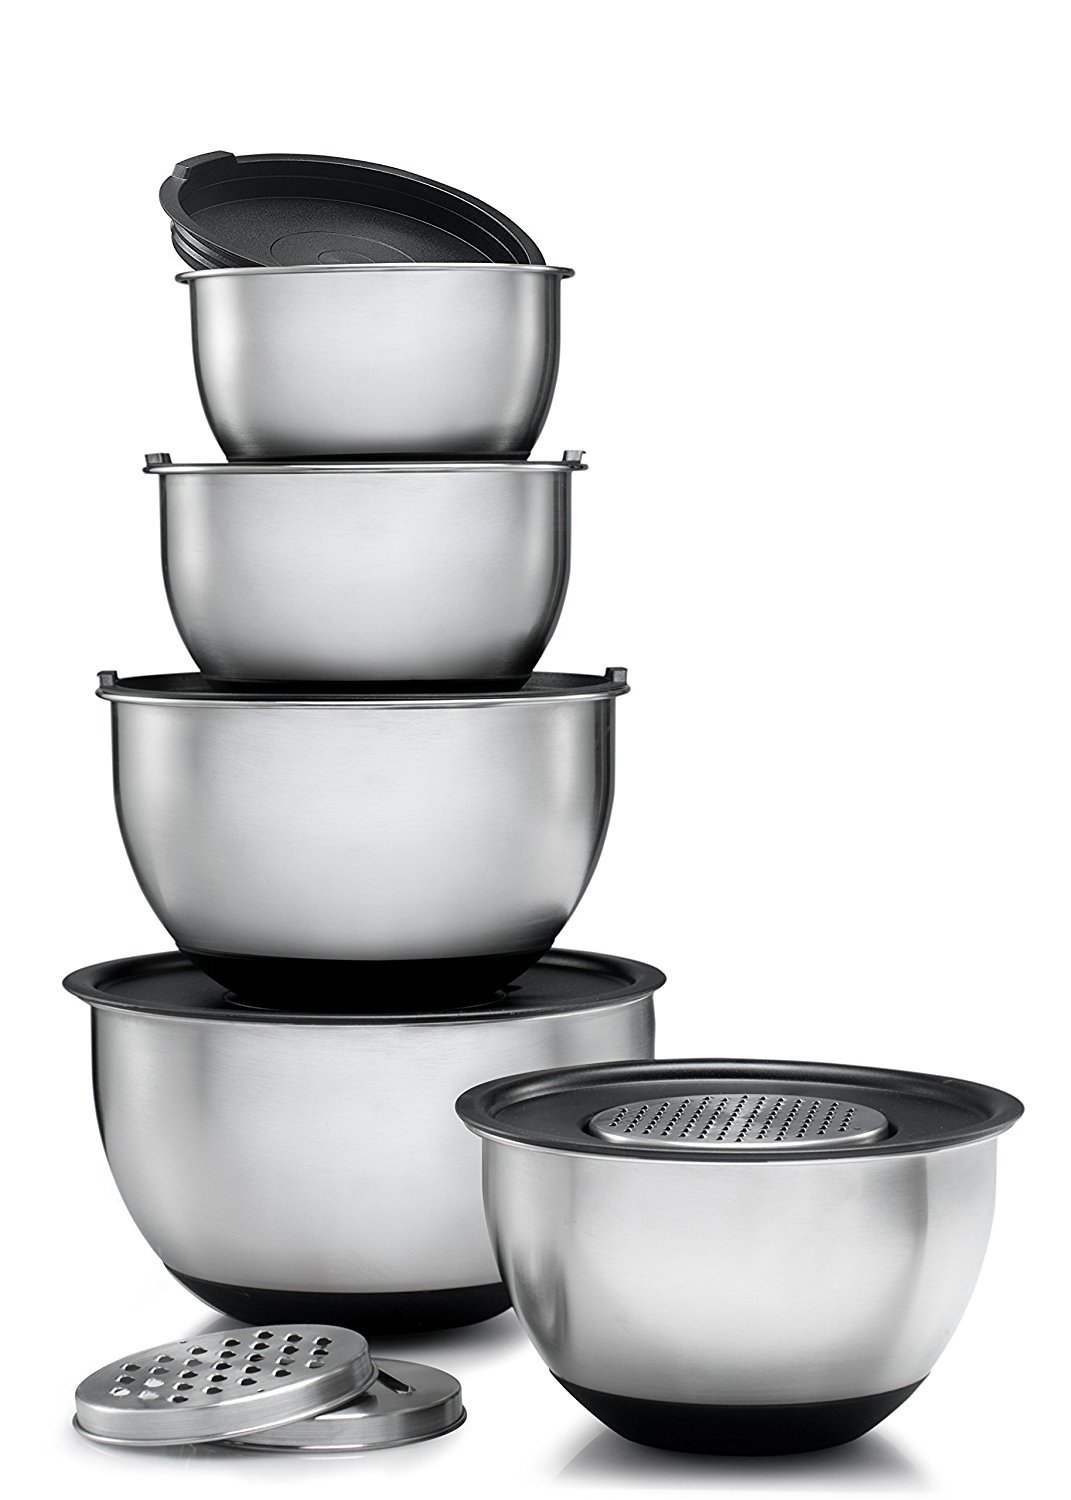 Ybmhome Set of 5 Stainless Steel Mixing Bowl - Includes Tight Fitting Lids + 3 Sharp Graters Discs – Mirror Finish Stackable Nesting Bowls with Rubber Bottom – Keep Kitchen Clean & Organized